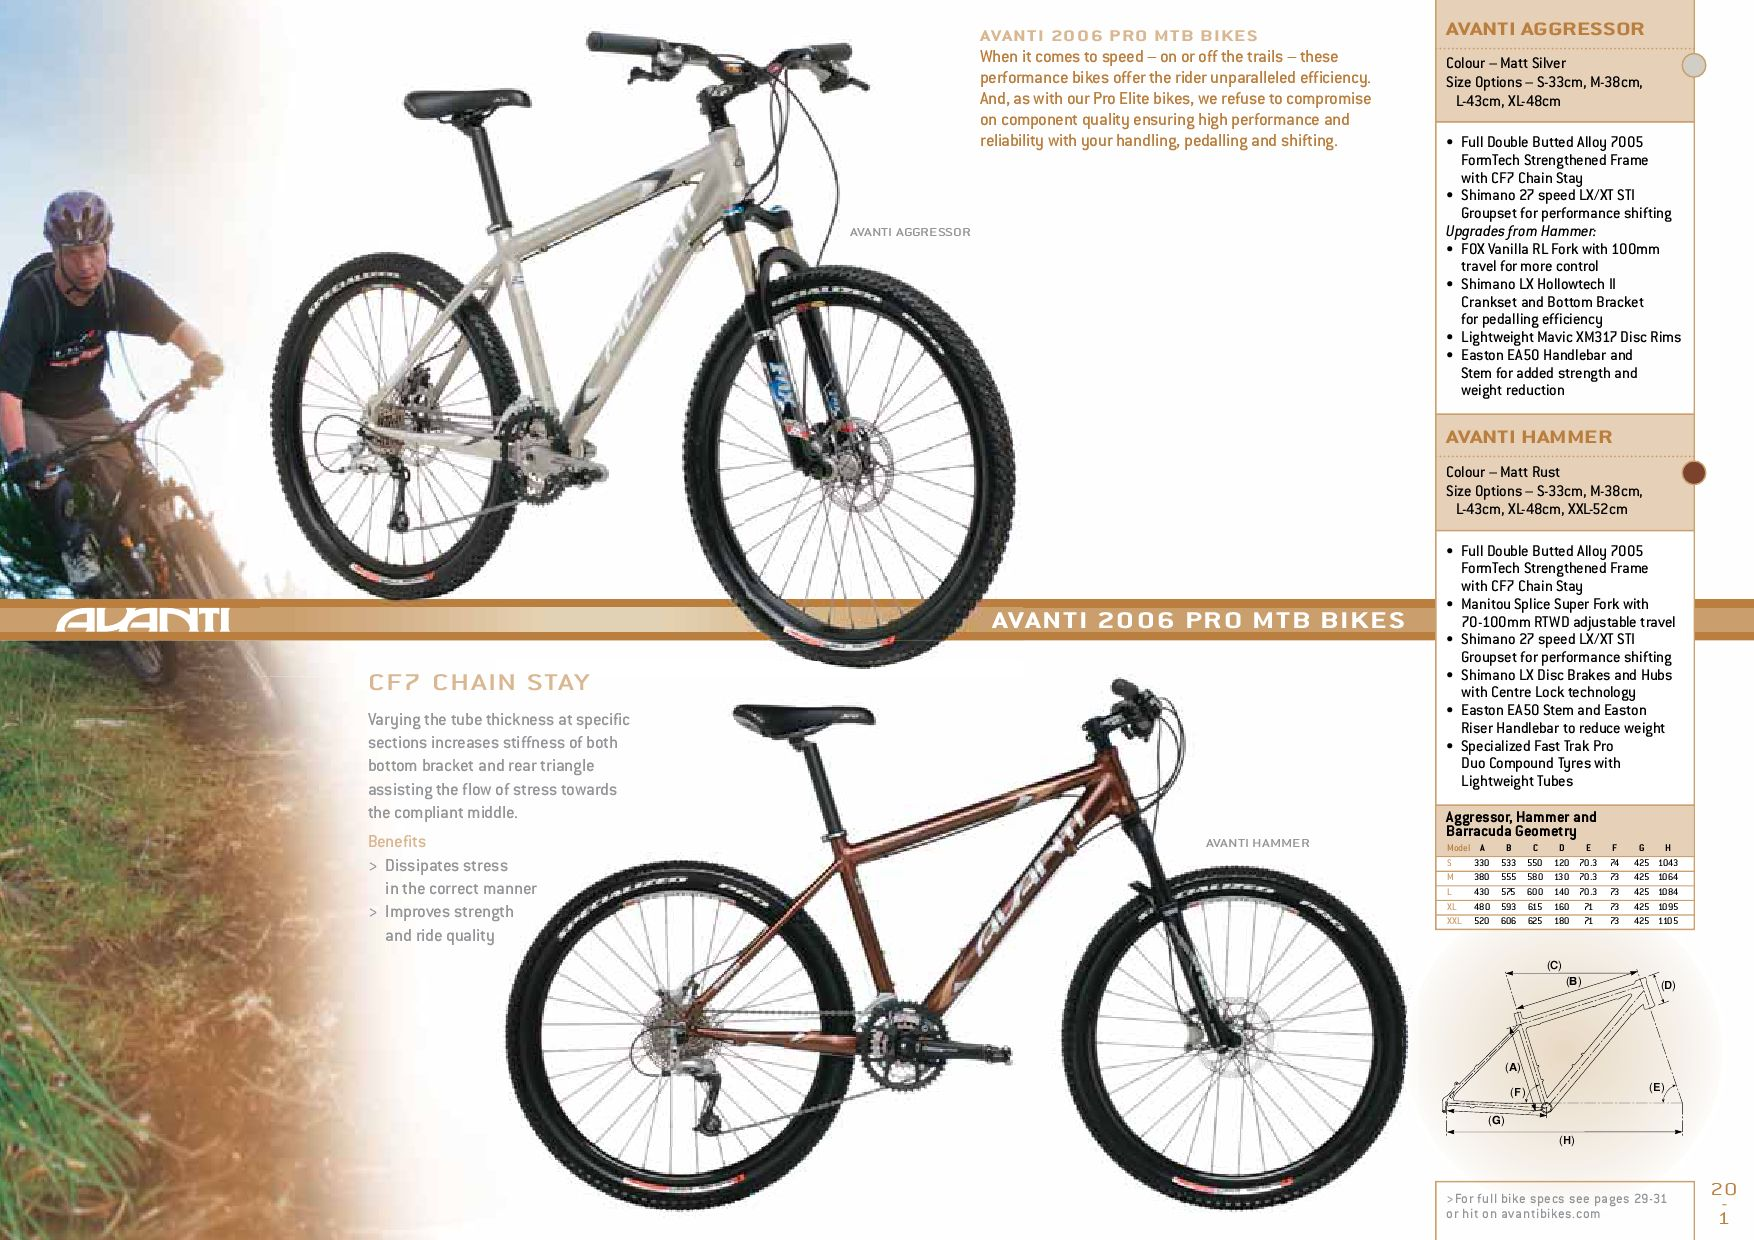 2006 Avanti Bike Catalogue by AvantiPlus Cycles - issuu